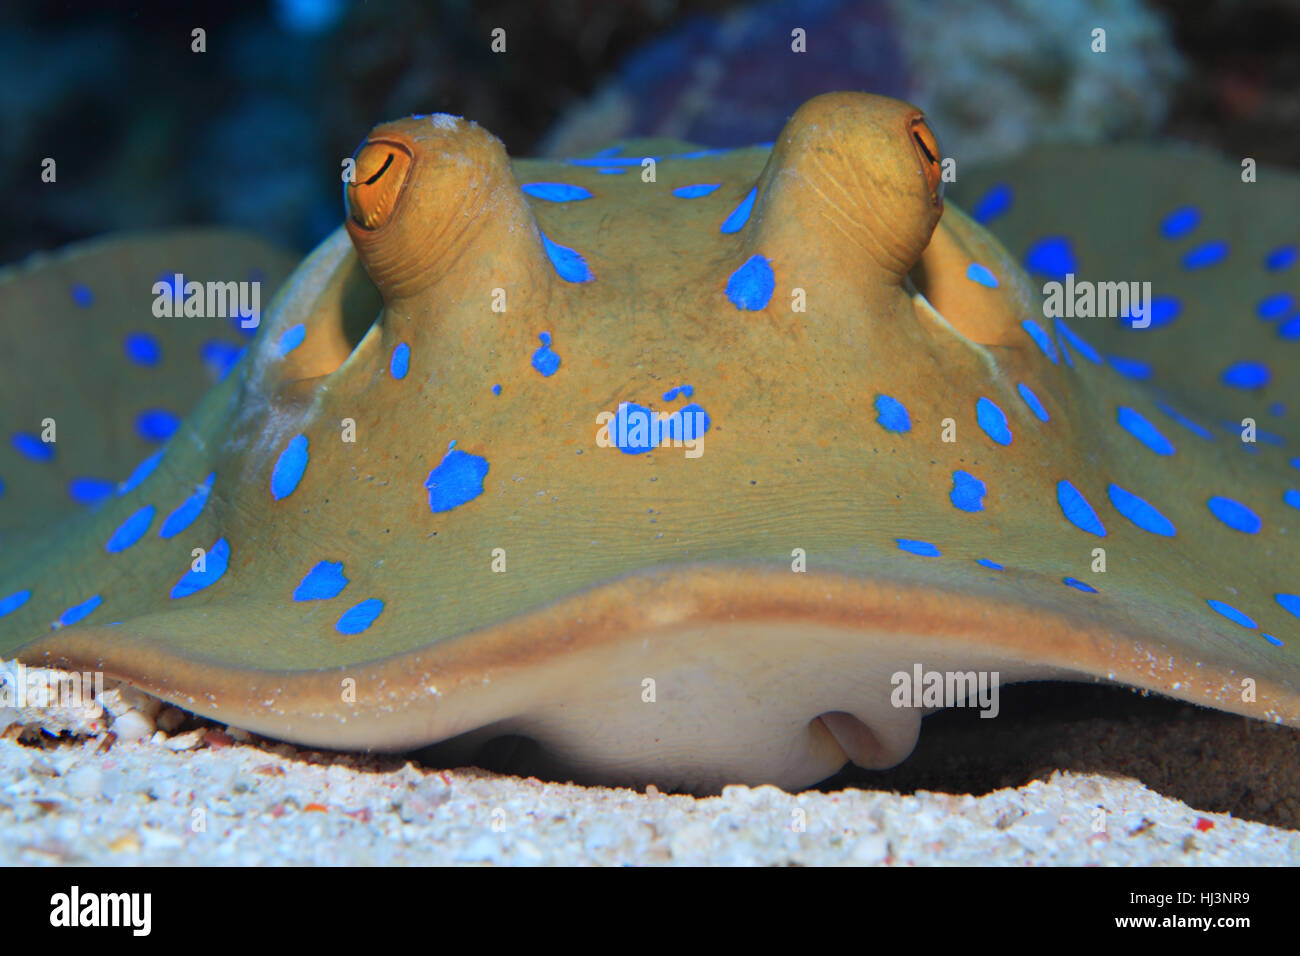 Bluespotted stingray (Taeniura lymma) on the sandy bottom of the Red sea - Stock Image